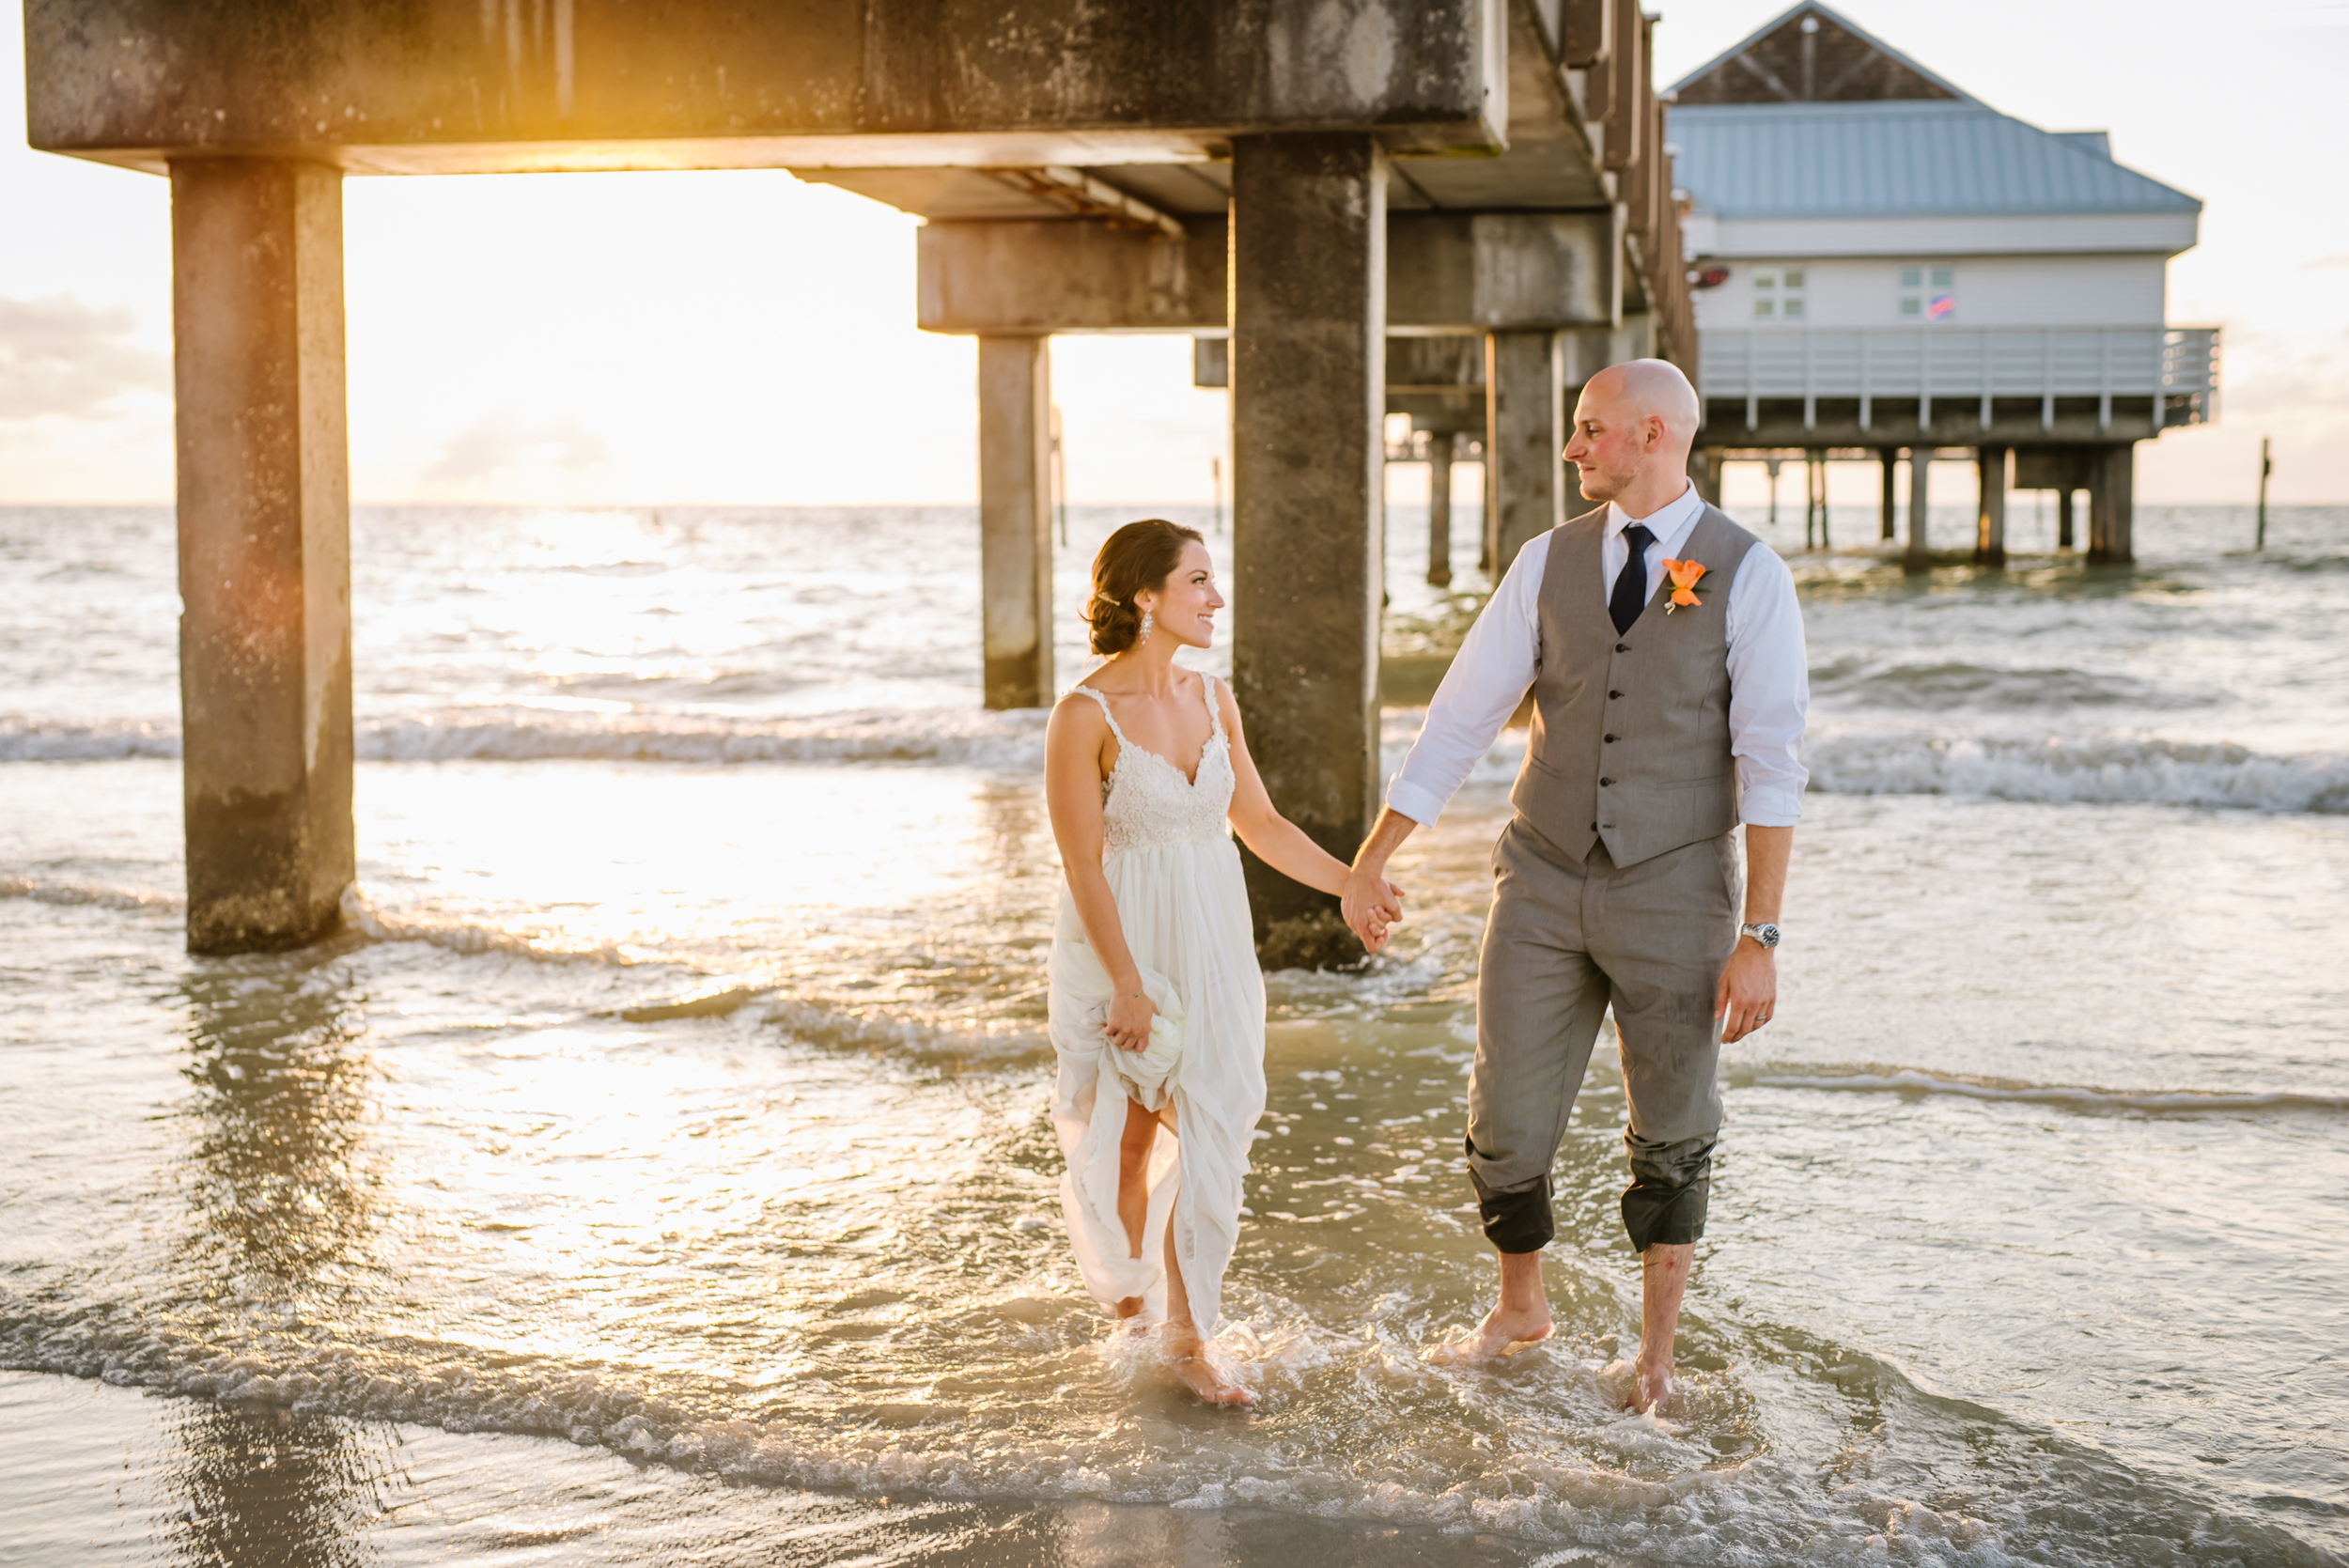 Jessica and Dennis got engaged near this very spot in 2014. I loved their day and how full of sentimental details it was. Her dress was made by a friend!